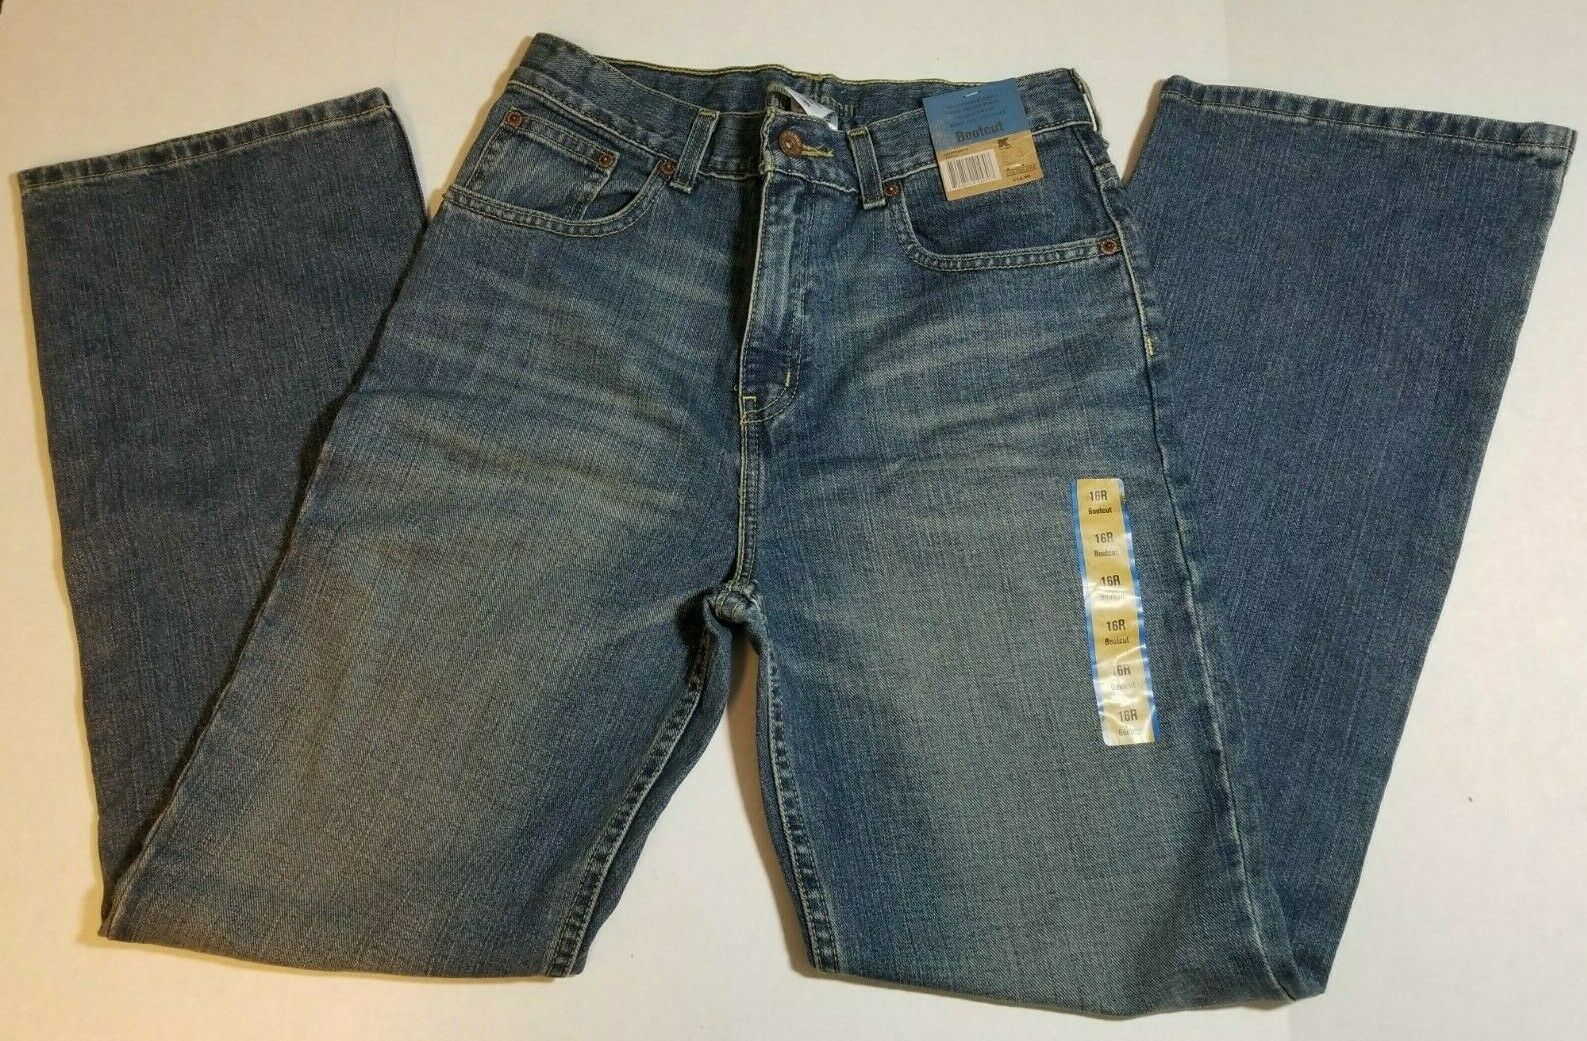 NWT Route 66 Regular Bootcut Boys Youth Jeans Size 16R Medium Wash Pants